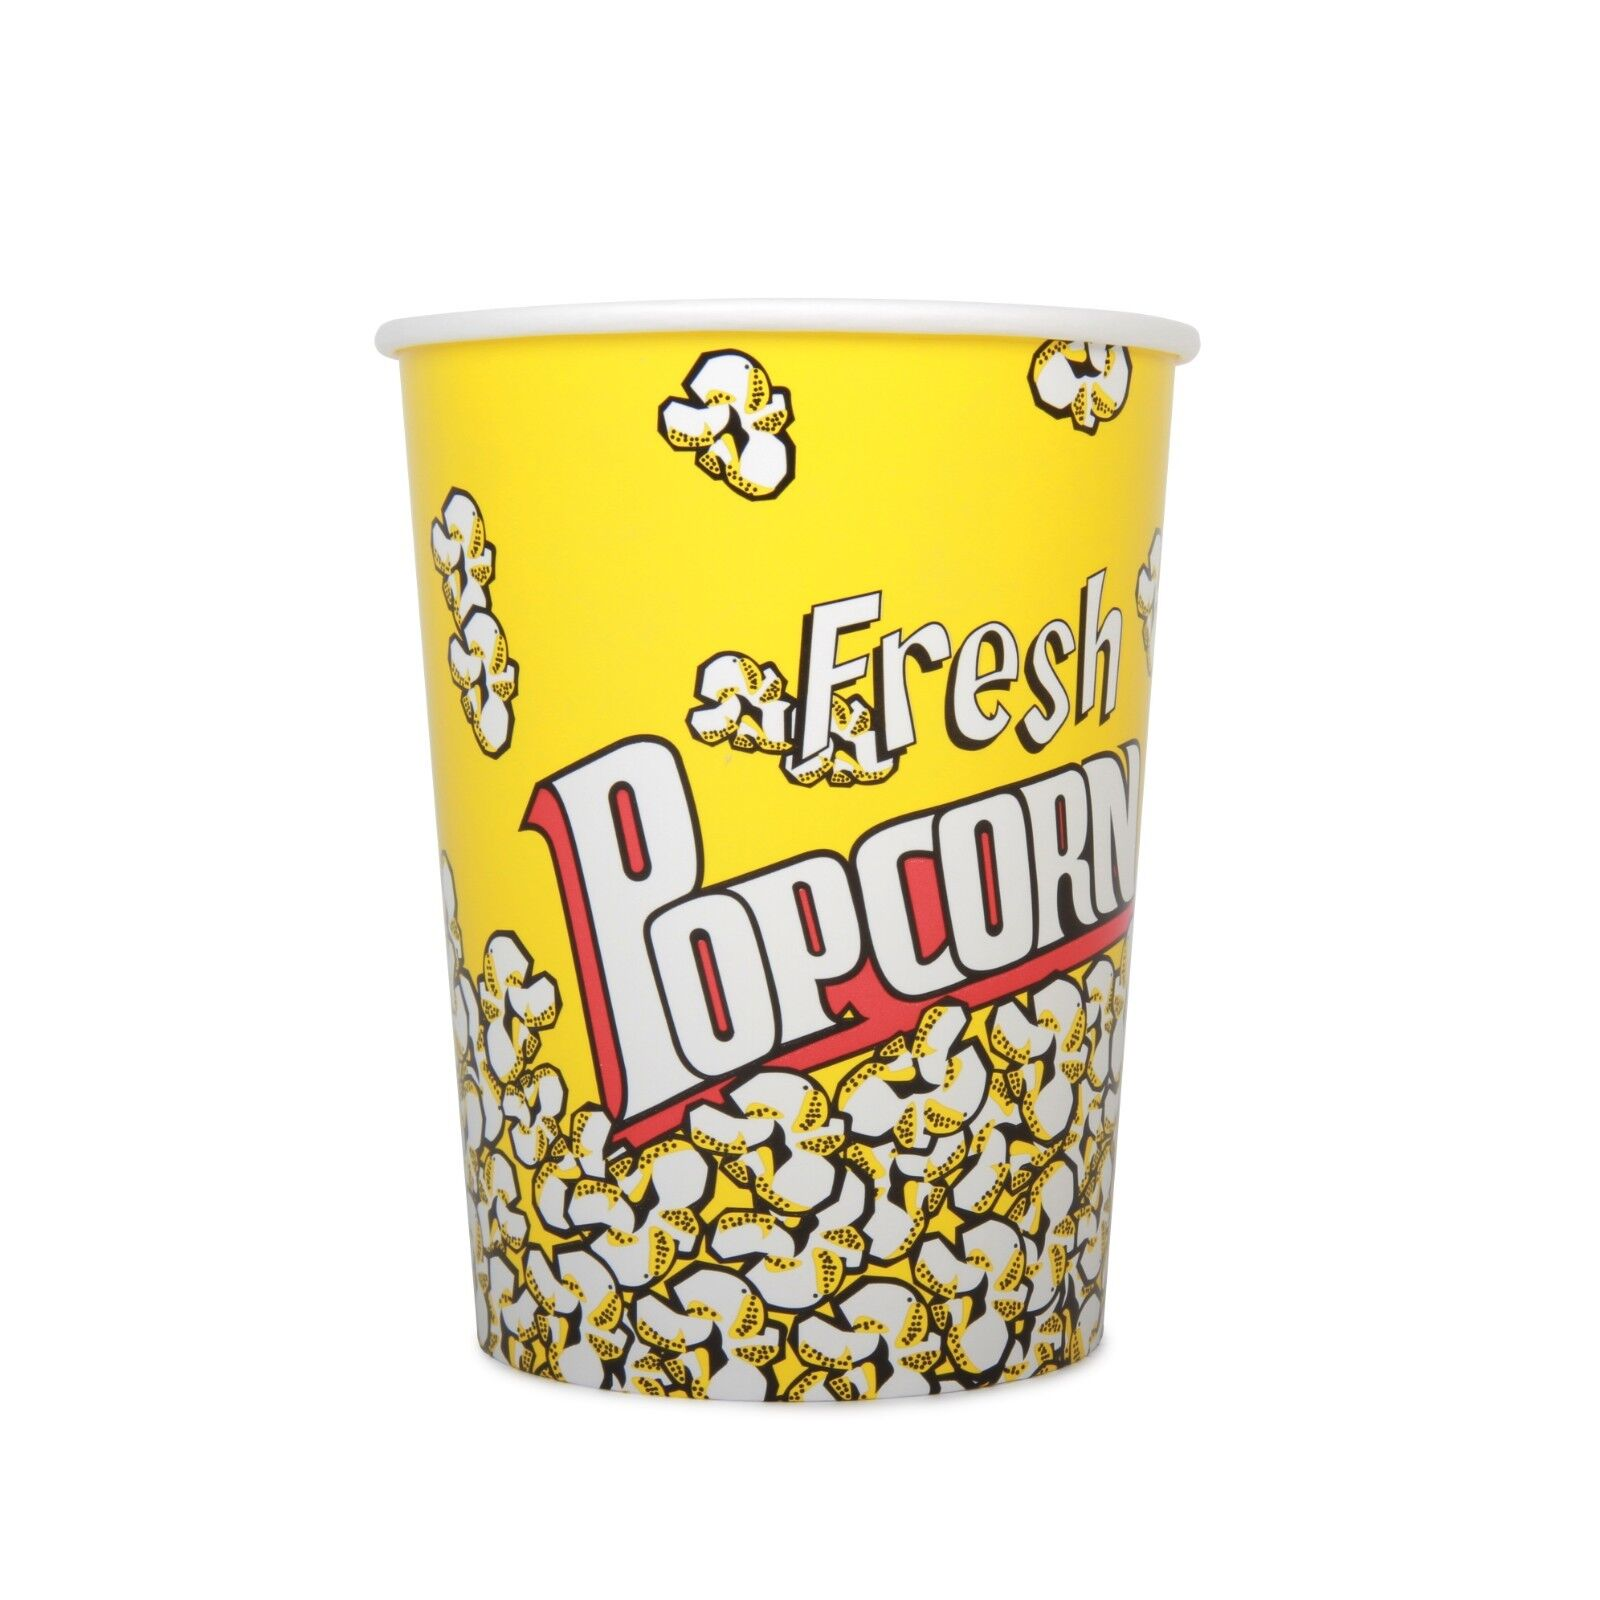 Gelb Theatre Style Paper Popcorn Tubs